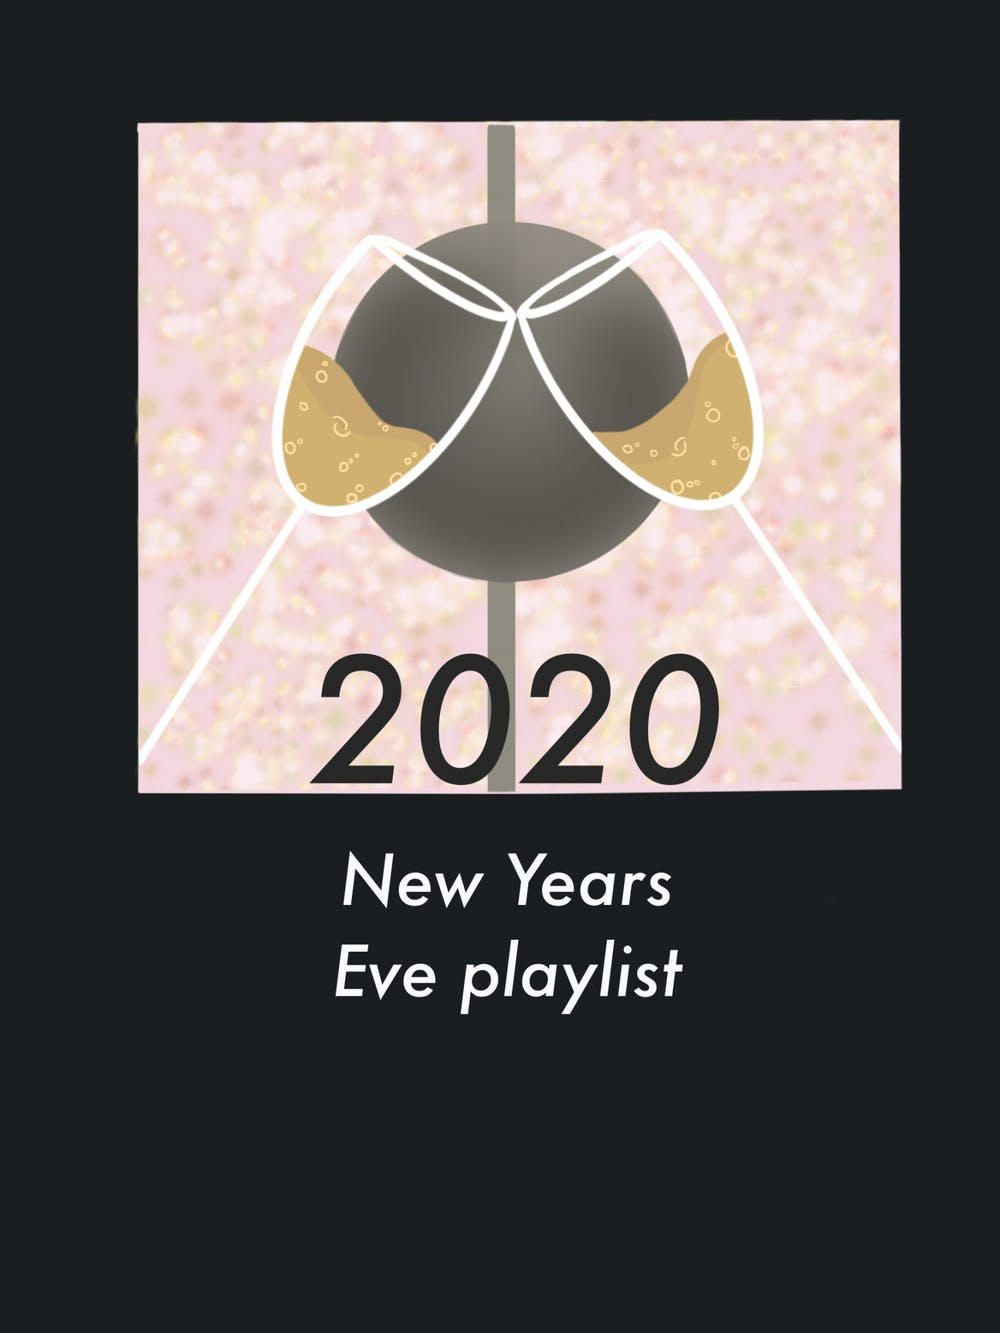 6 songs for your New Year's Eve playlist